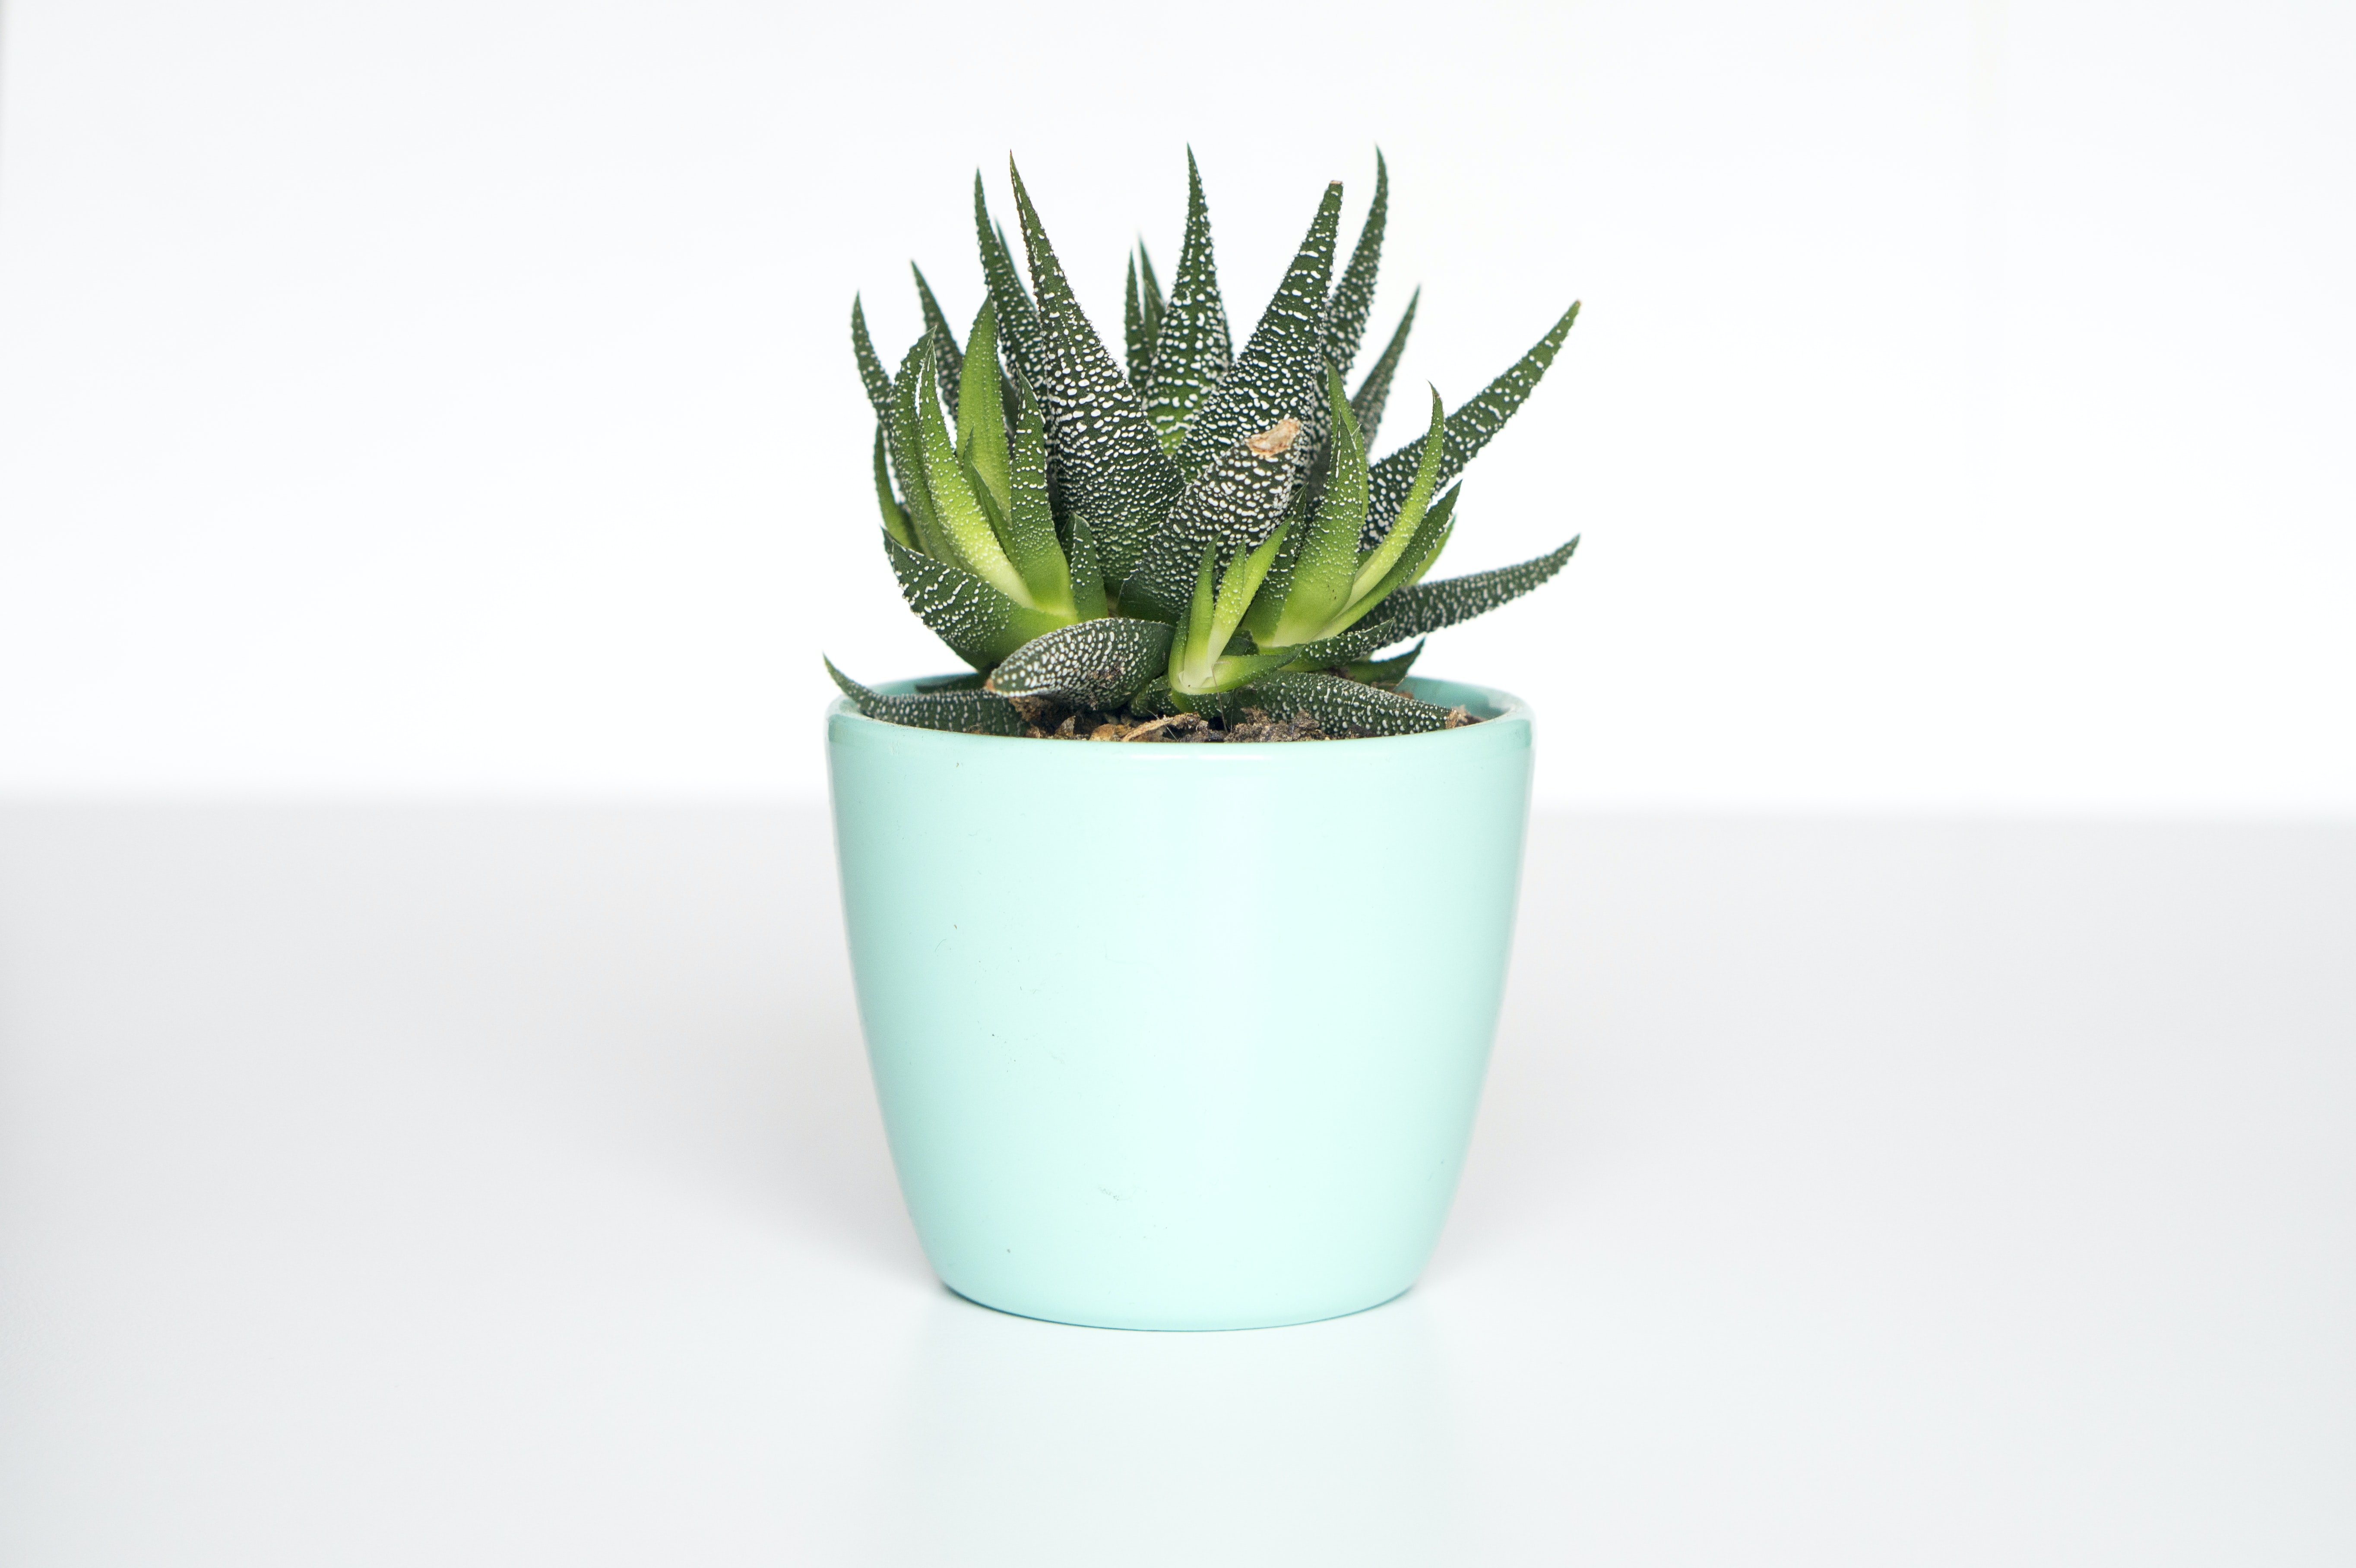 green succulent in teal ceramic vase